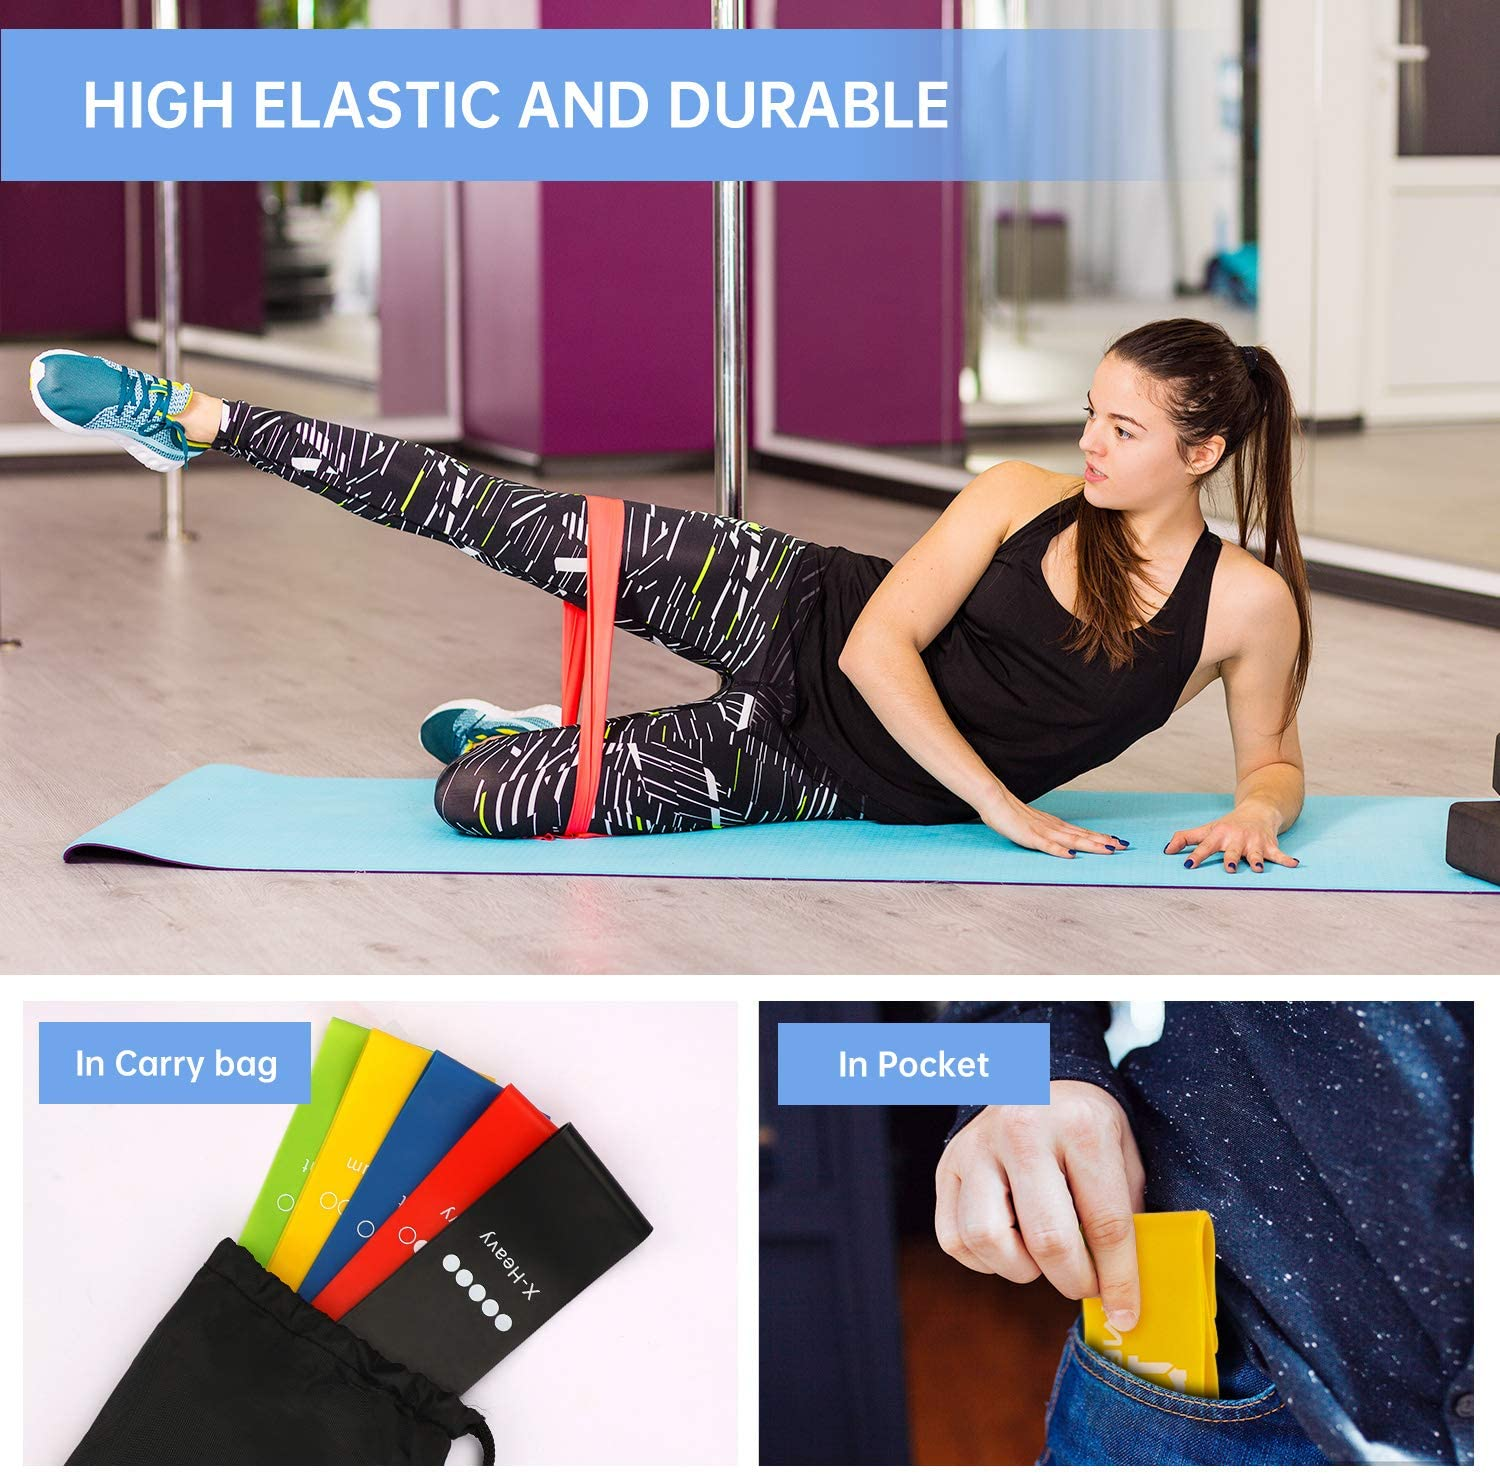 Home Fitness MENNYO Resistance Bands Physical Therapy Exercise Bands 5 Set Resistance Fitness Exercise Bands with Carry Case Ideal for Women and Men Resistance Training